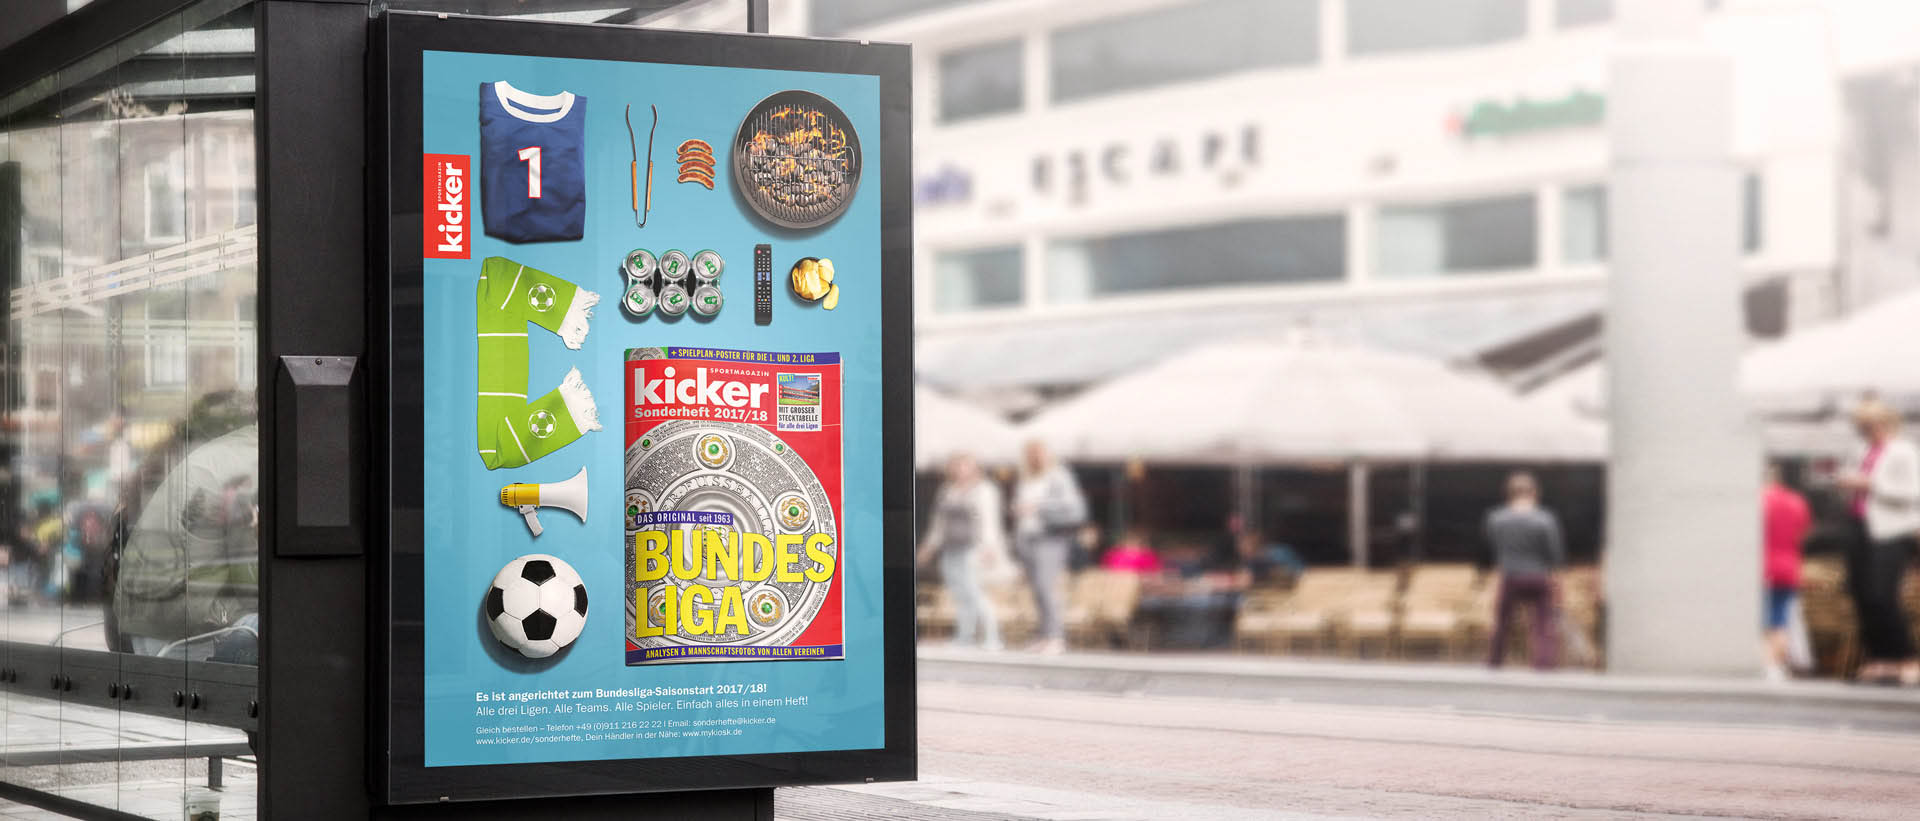 REINGOLD Außenwerbung - Out of home-Kampagne für den kicker